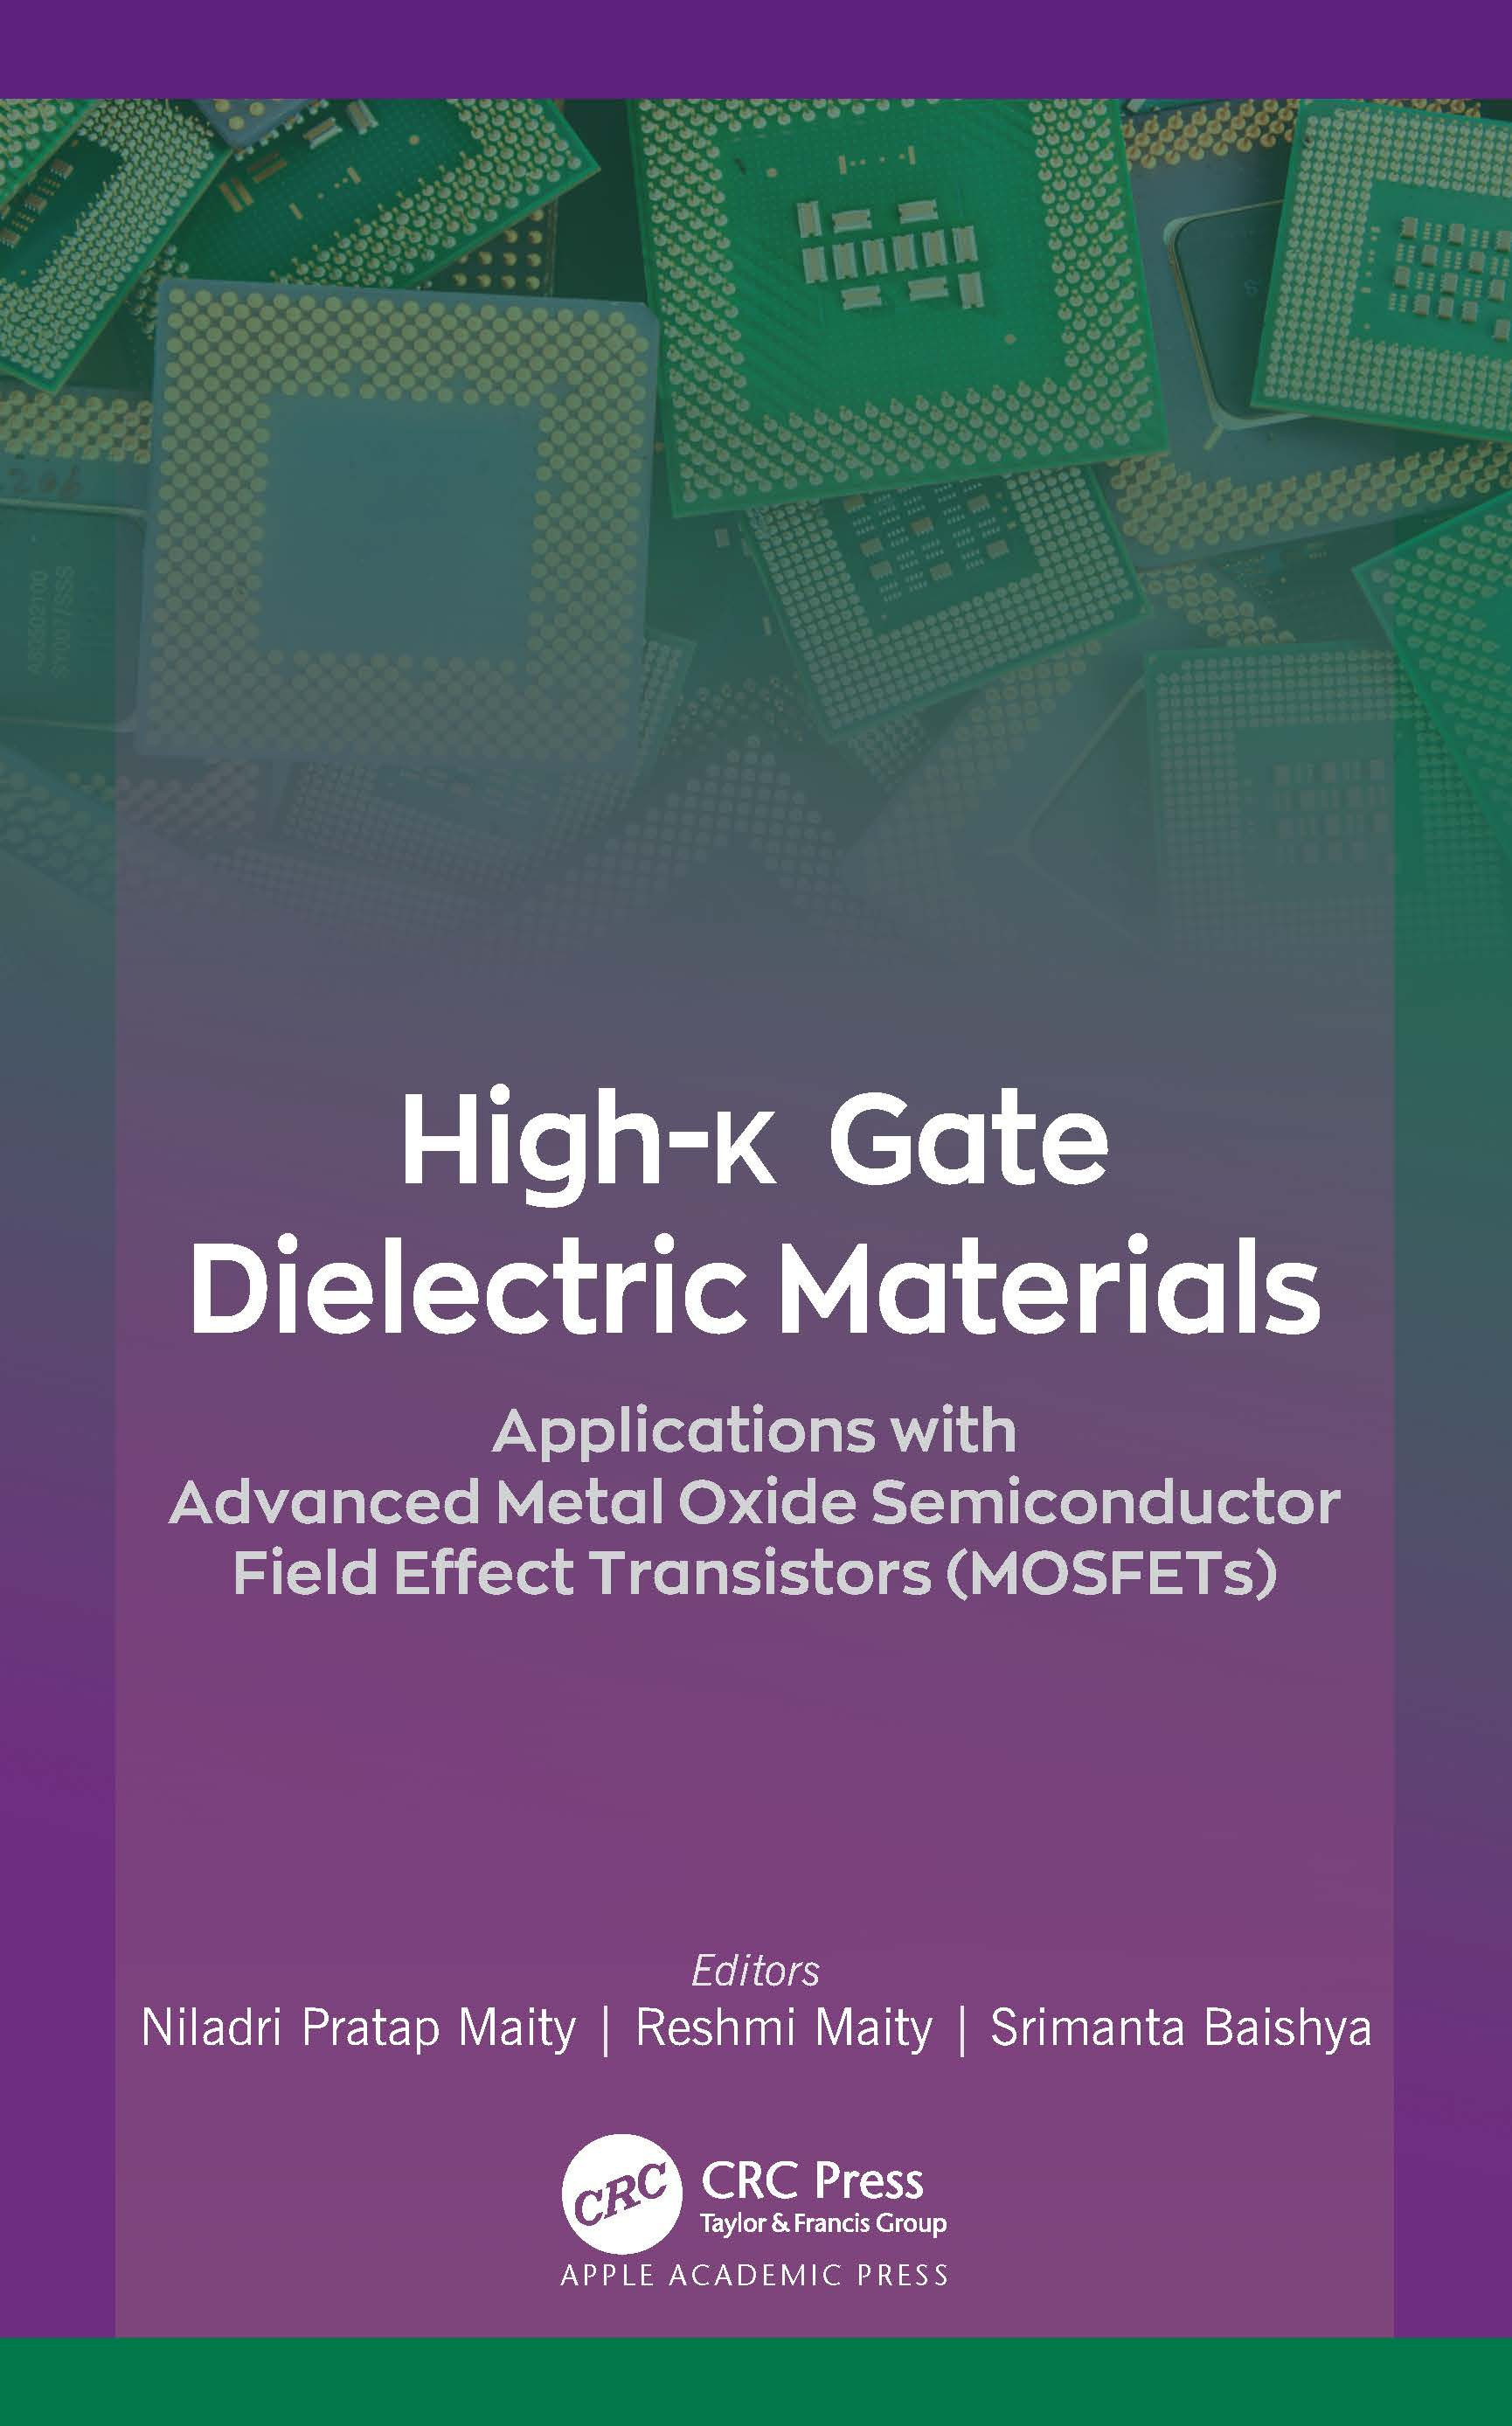 High k Gate Dielectric Materials Applications with Advanced Metal Oxide  Semiconductor Field Effect Transistors MOSFETs